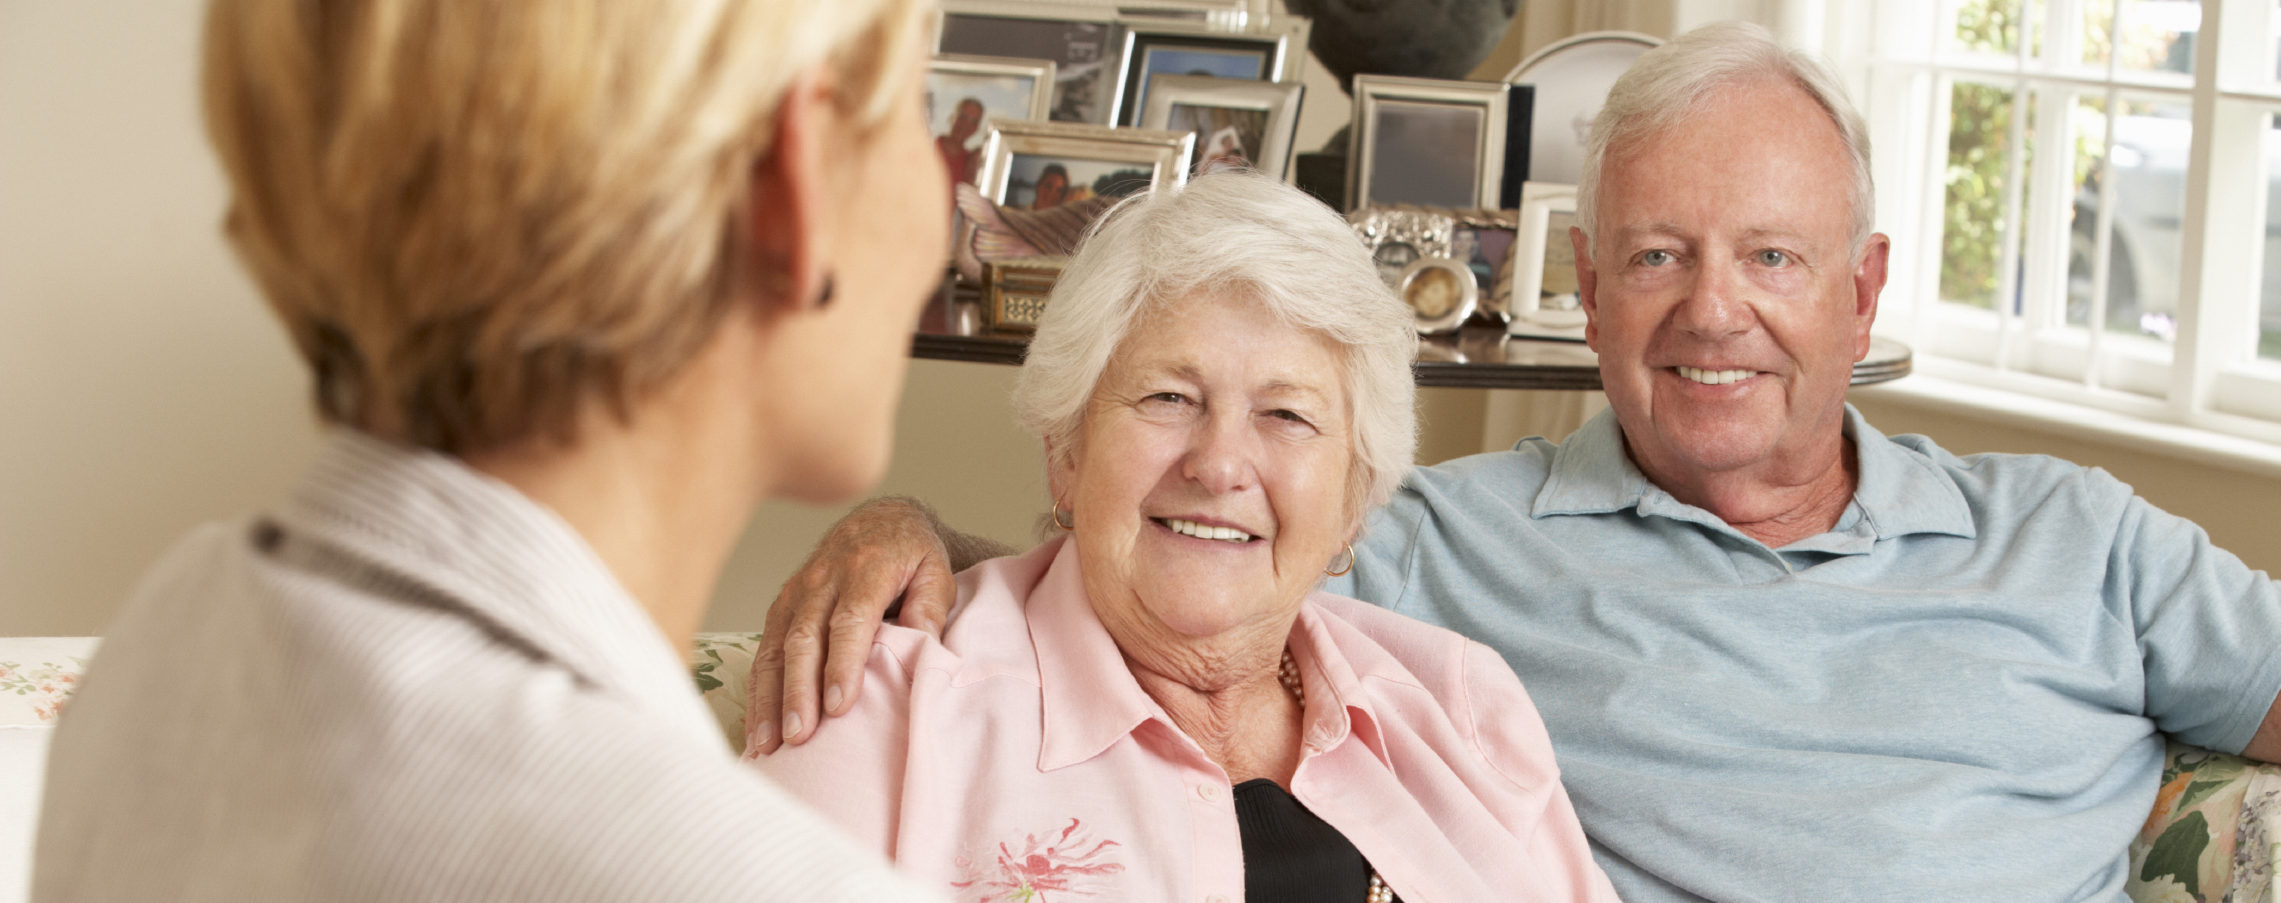 <b>Aging Life Care Services</b>